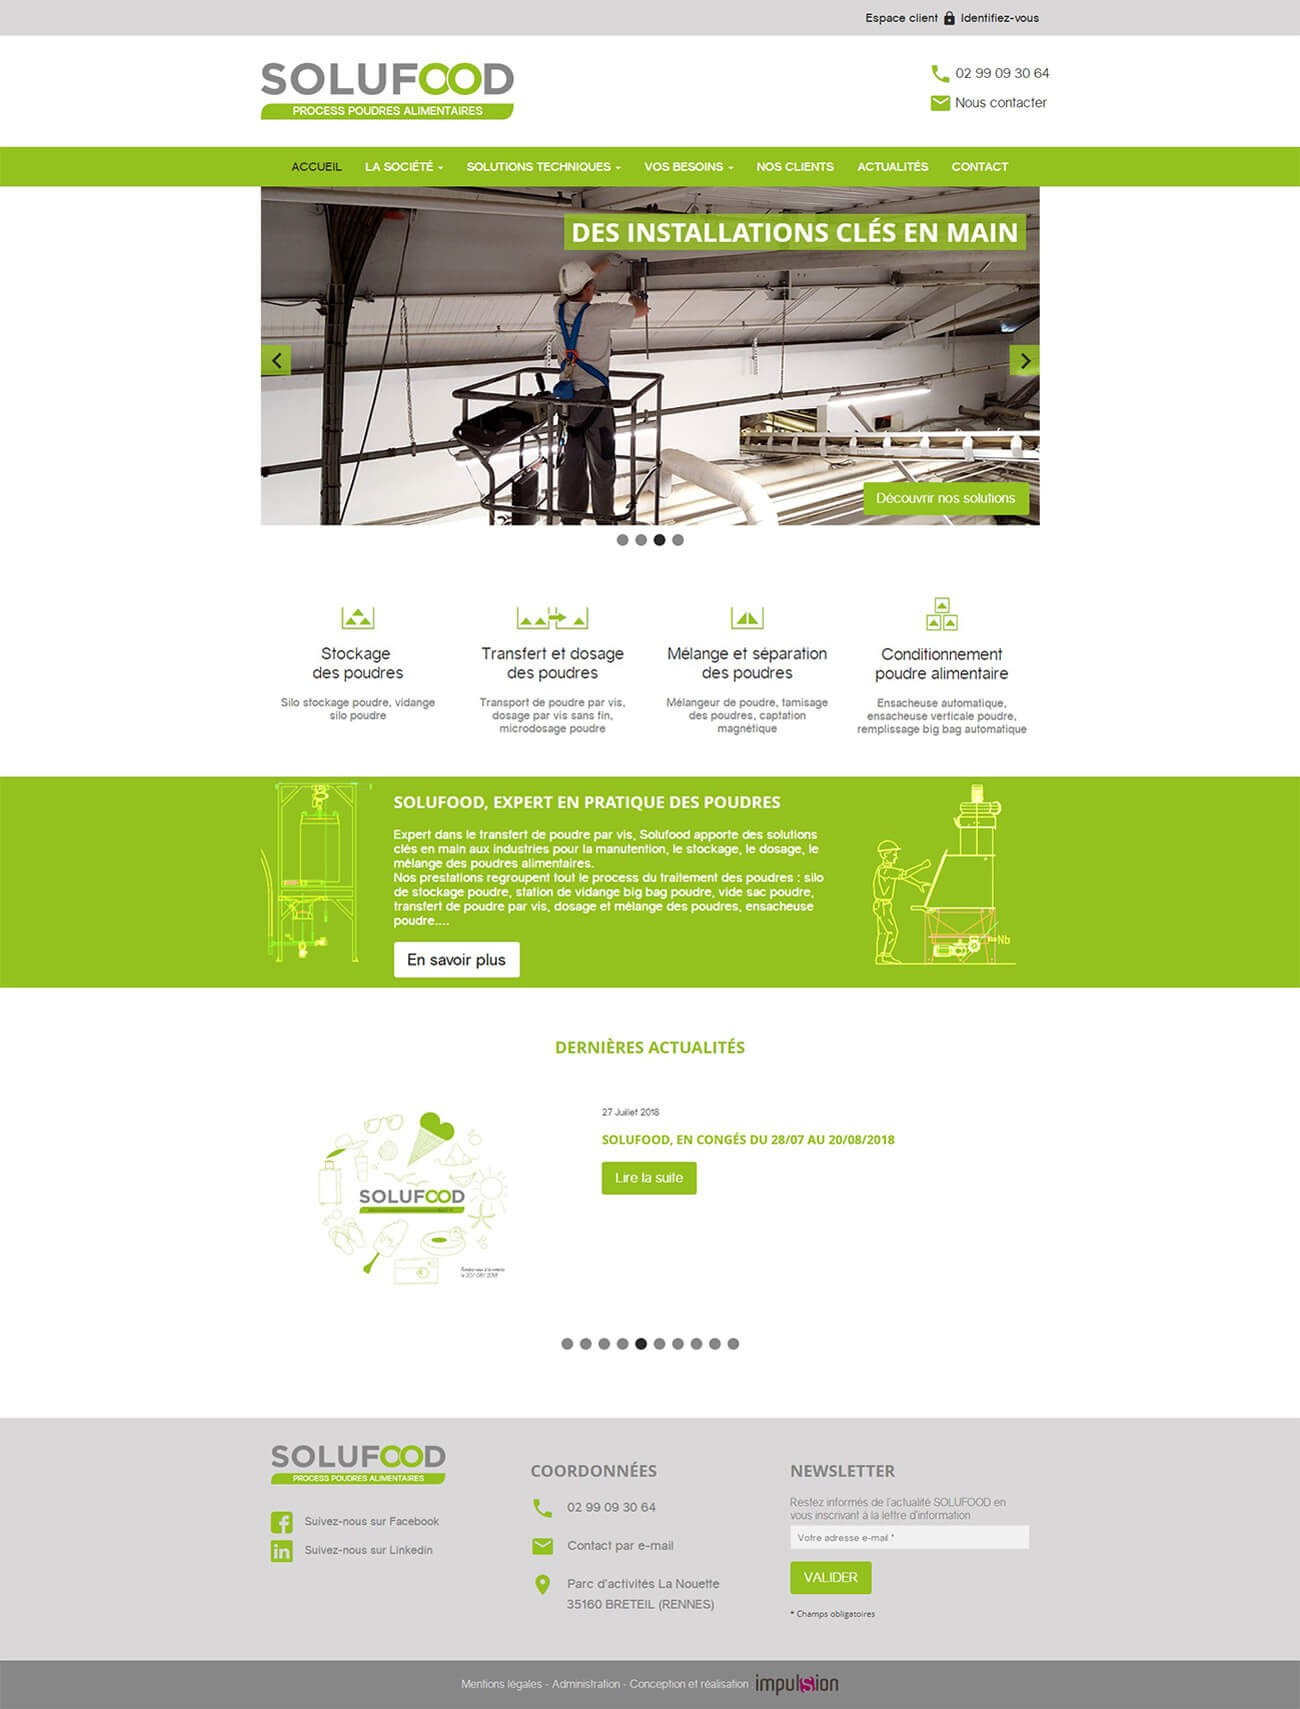 Solufood-Experts-en-process-poudres-alimentaires---.jpg